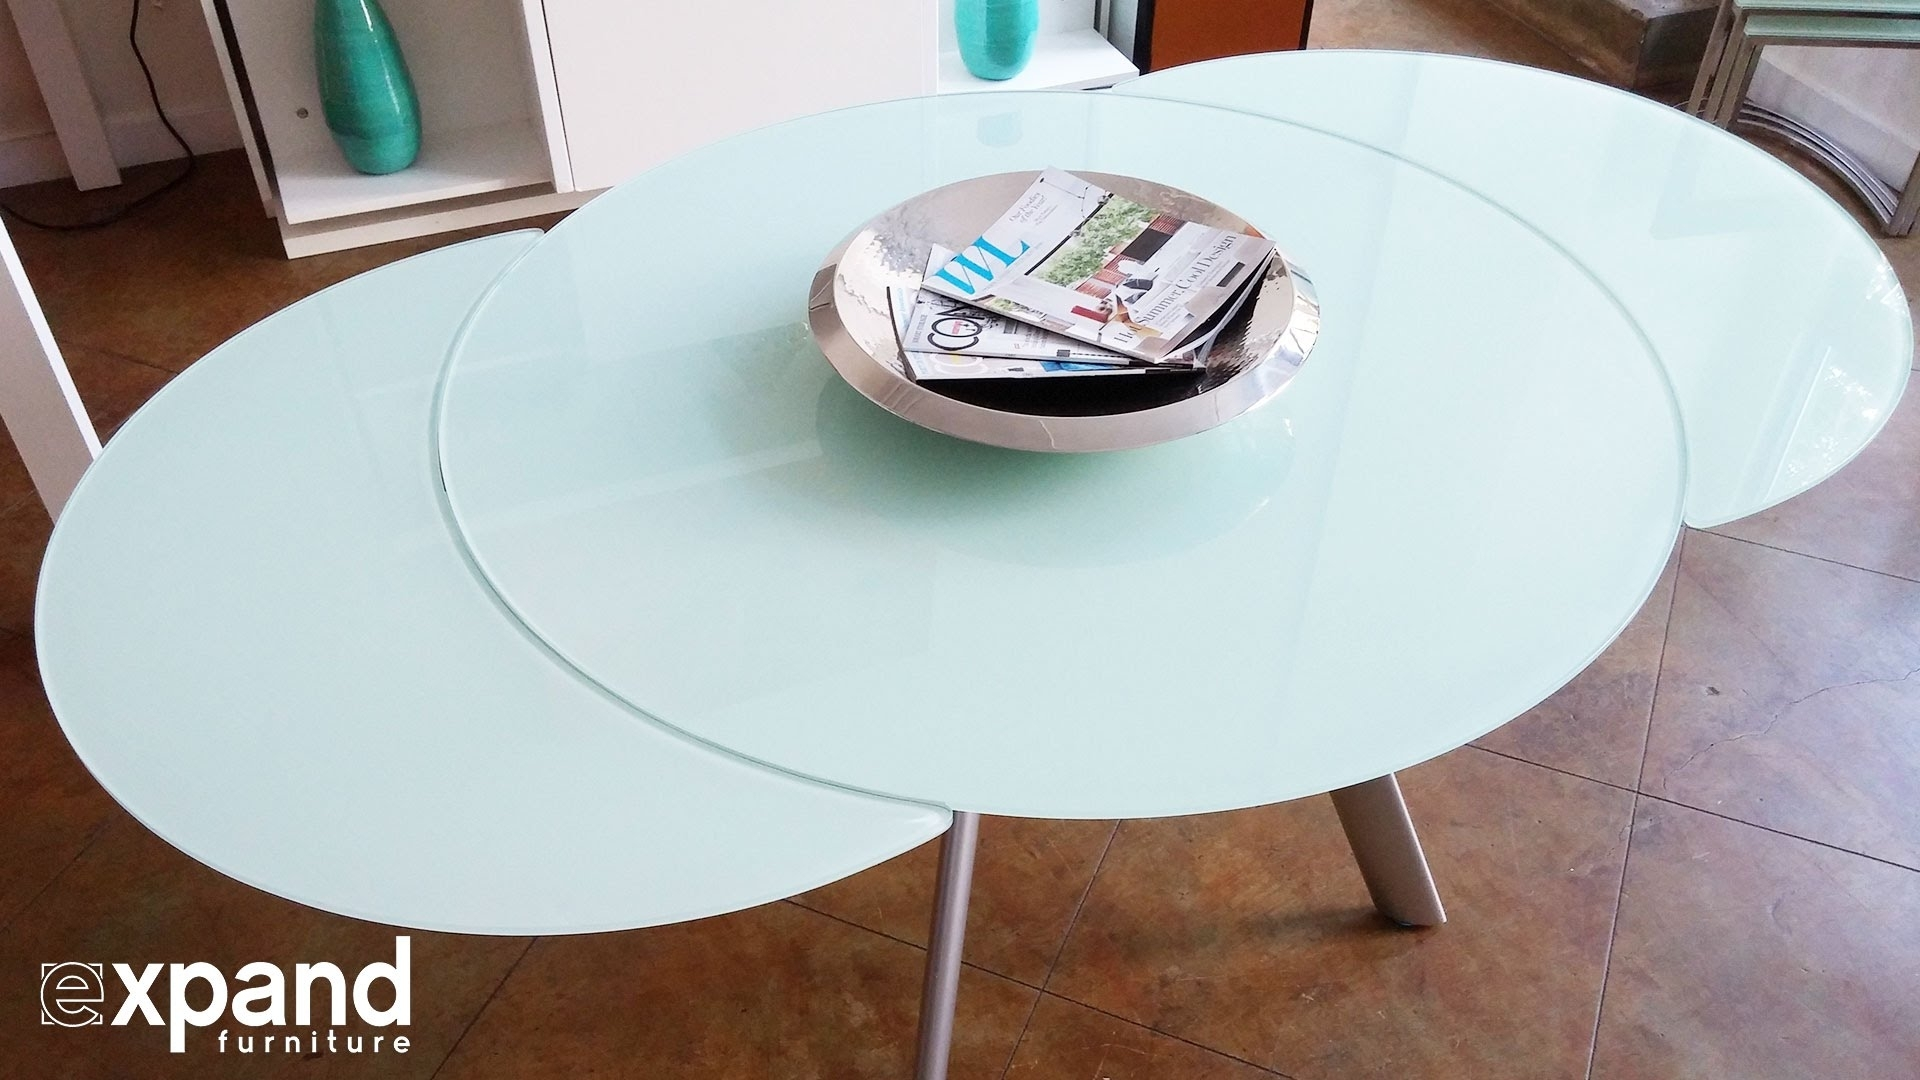 Butterfly Round Glass Extending Table Demonstration - Youtube within Spin Rotating Coffee Tables (Image 8 of 30)